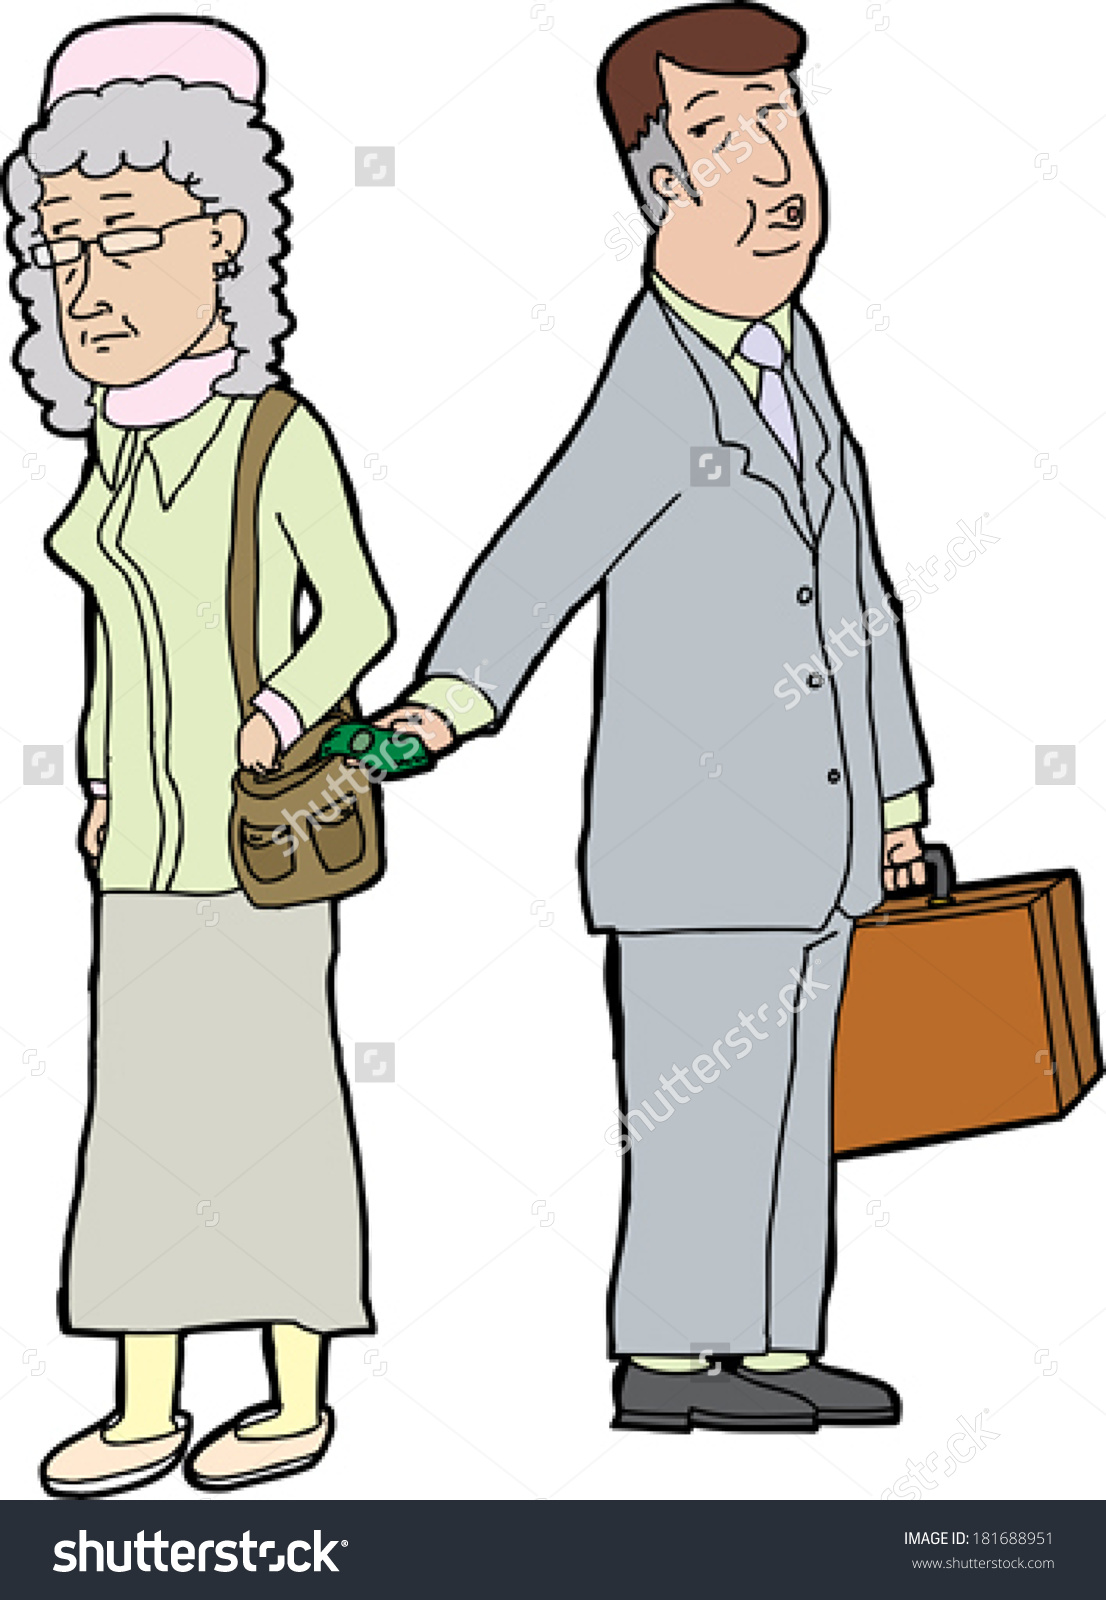 Whistling Business Man Stealing Money From Elderly Woman Stock.